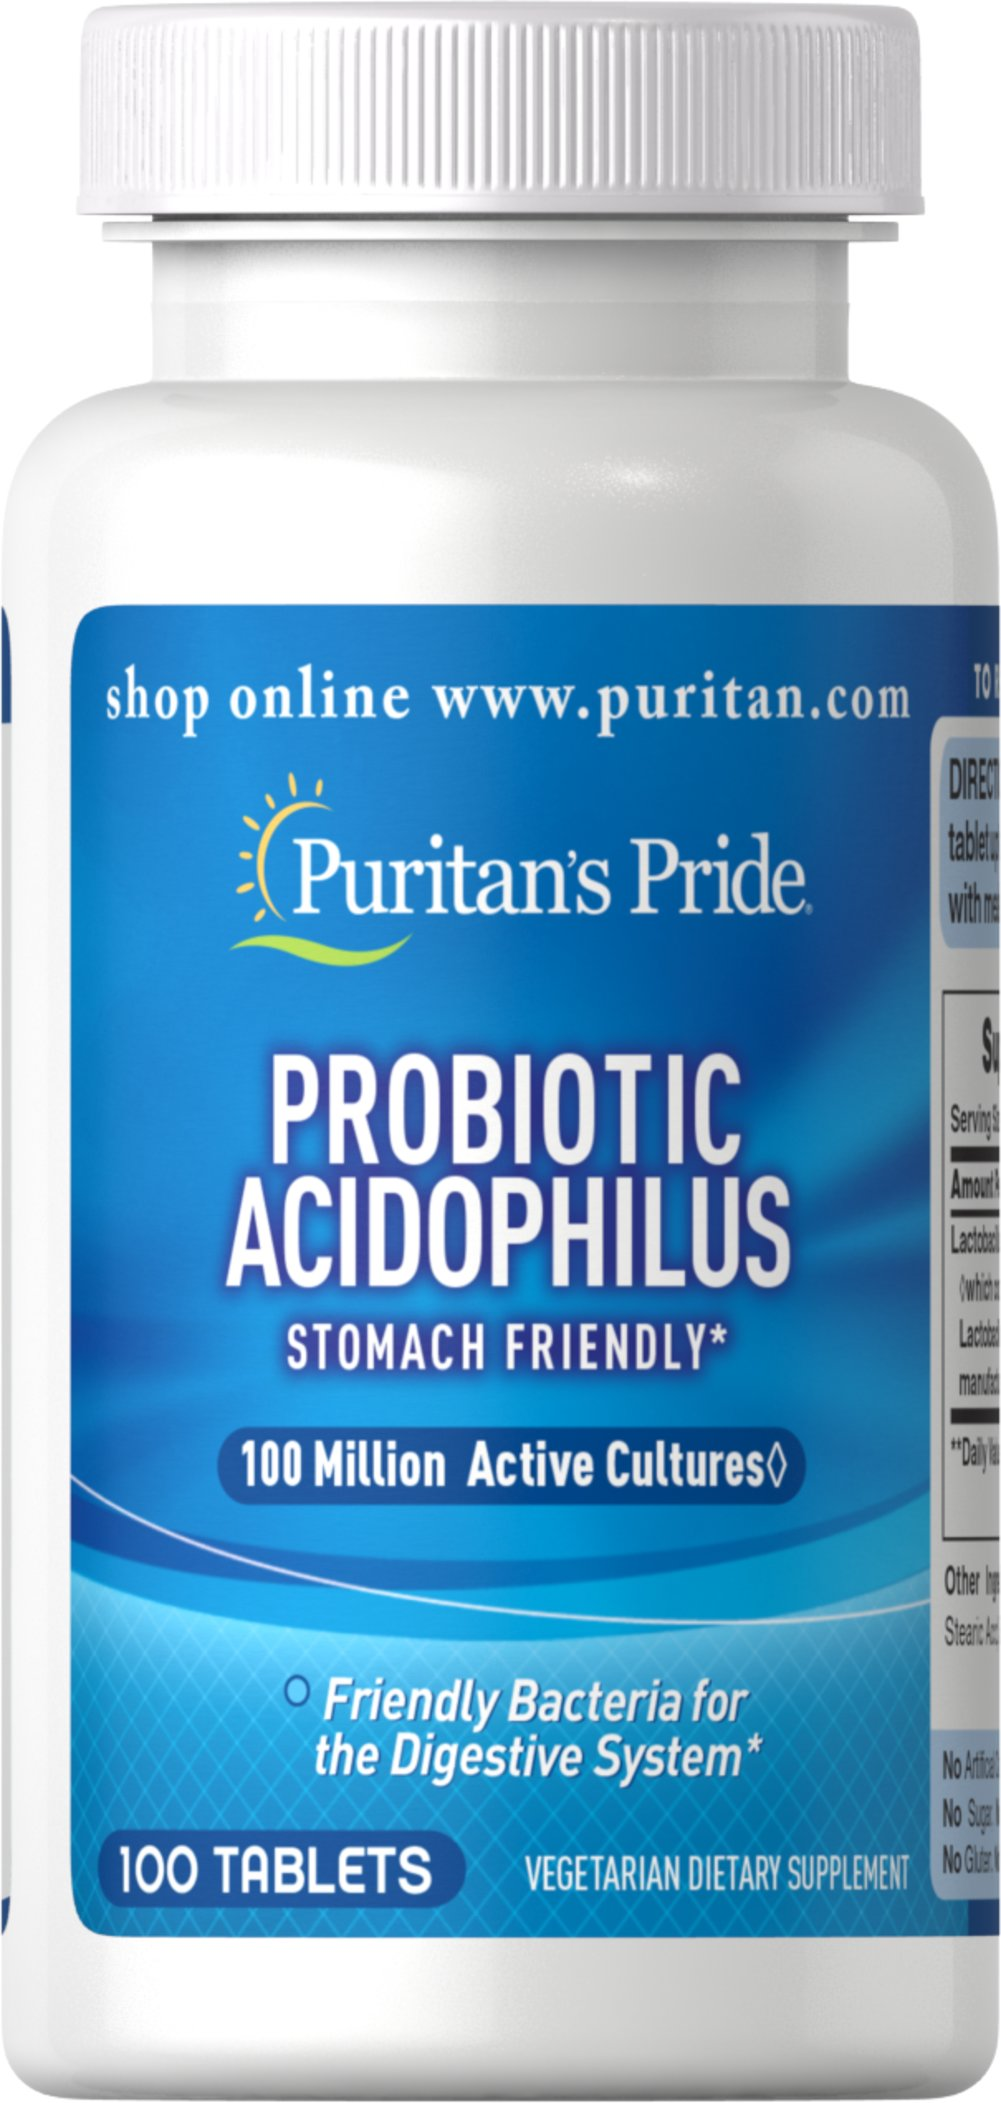 Probiotic Acidophilus <p>New small tablet</p><p>Stomach Friendly</p><p>Friendly bacteria for the Digestive System</p>  100 Tablets